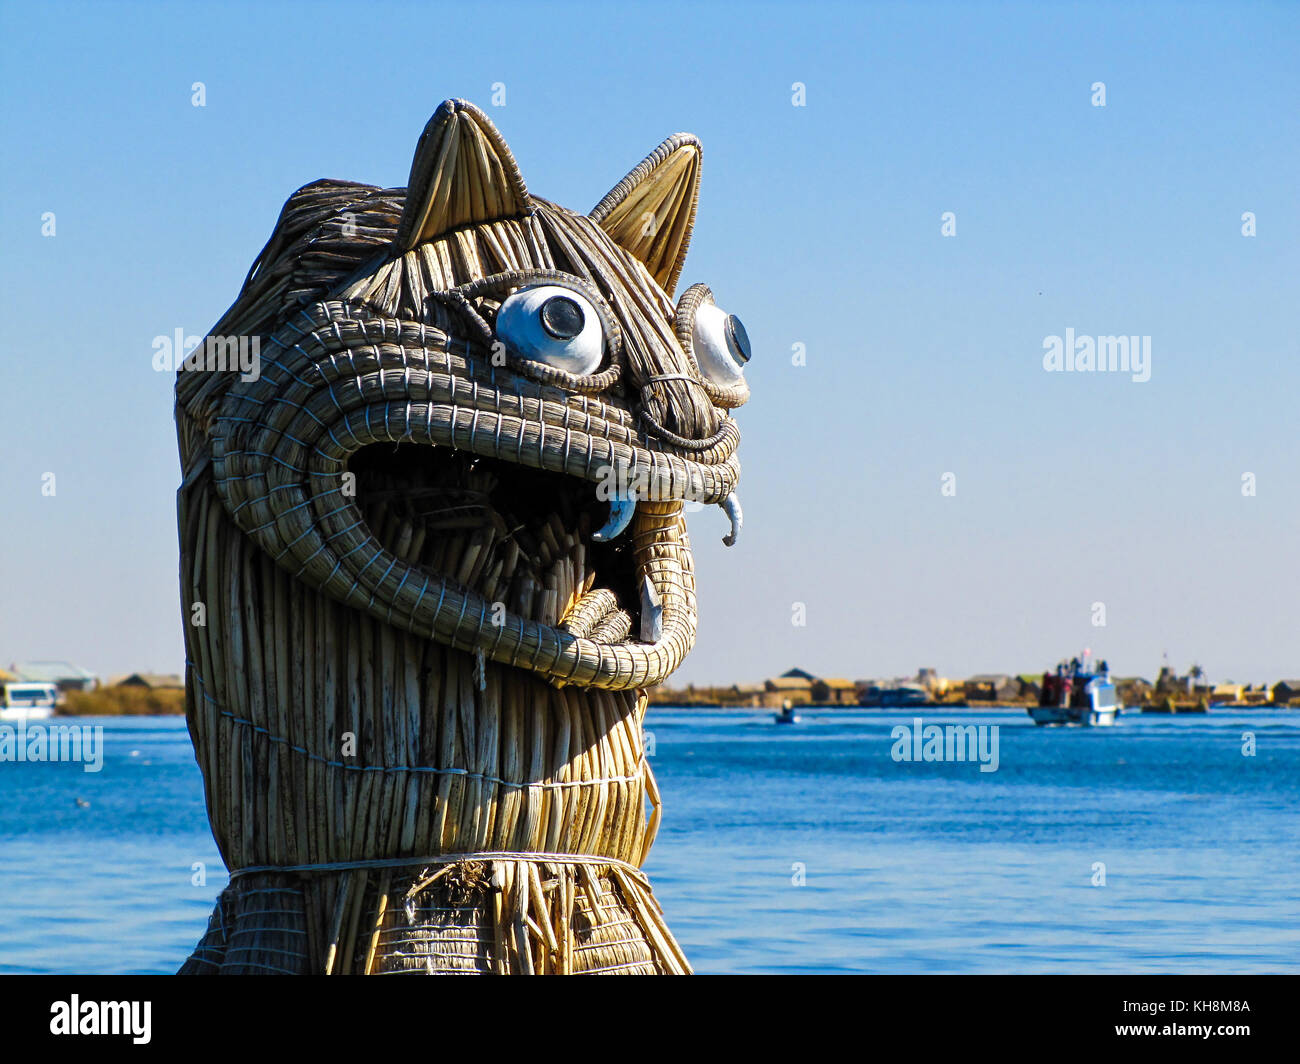 Titicaca lake from Peru waters - Stock Image